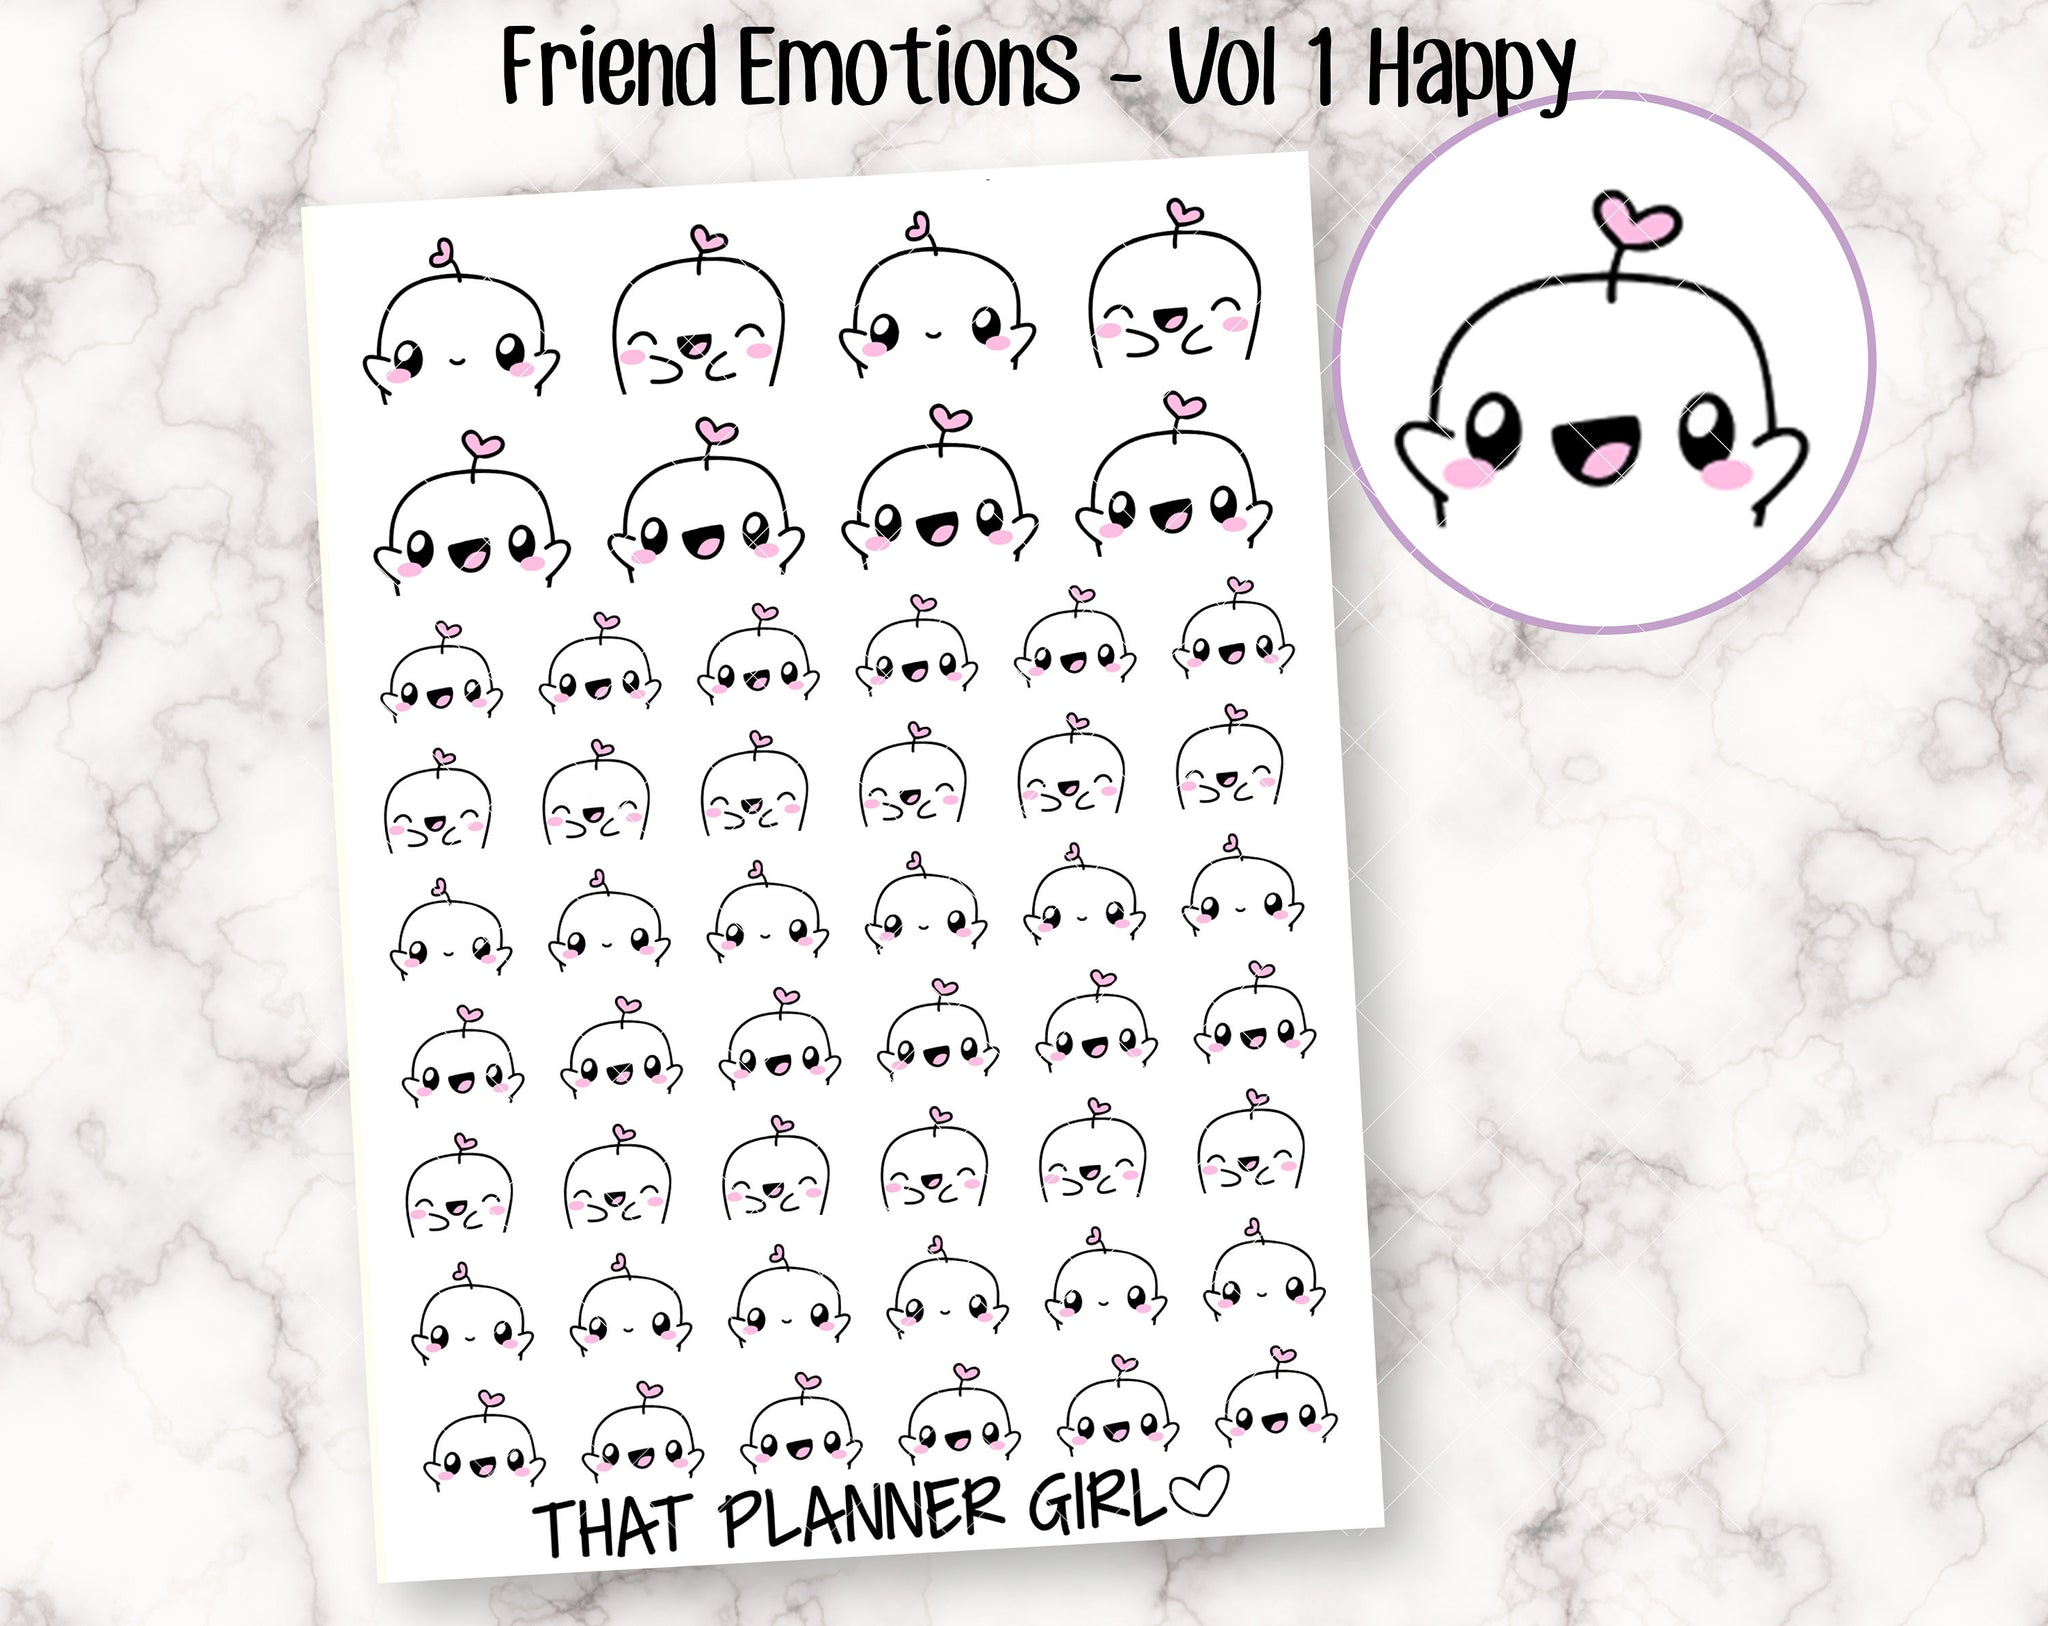 Friend Emotions - VOL 1